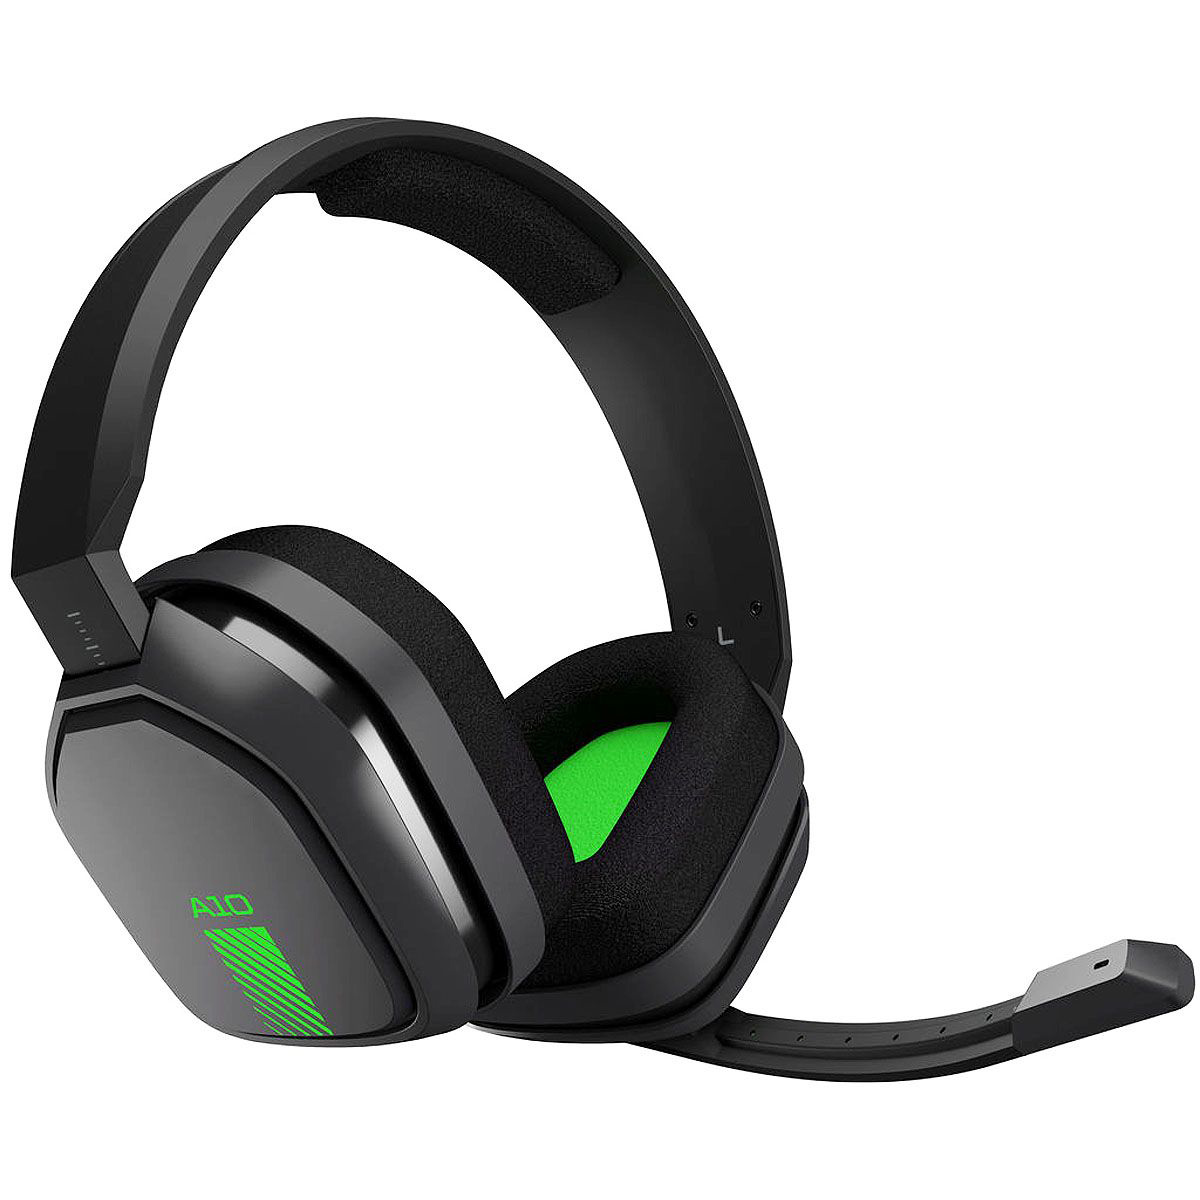 Refurbished Logitech Astro A10 Wired Gaming PC Xbox One Headset w/ Boom Mic 3.5mm Gray Green